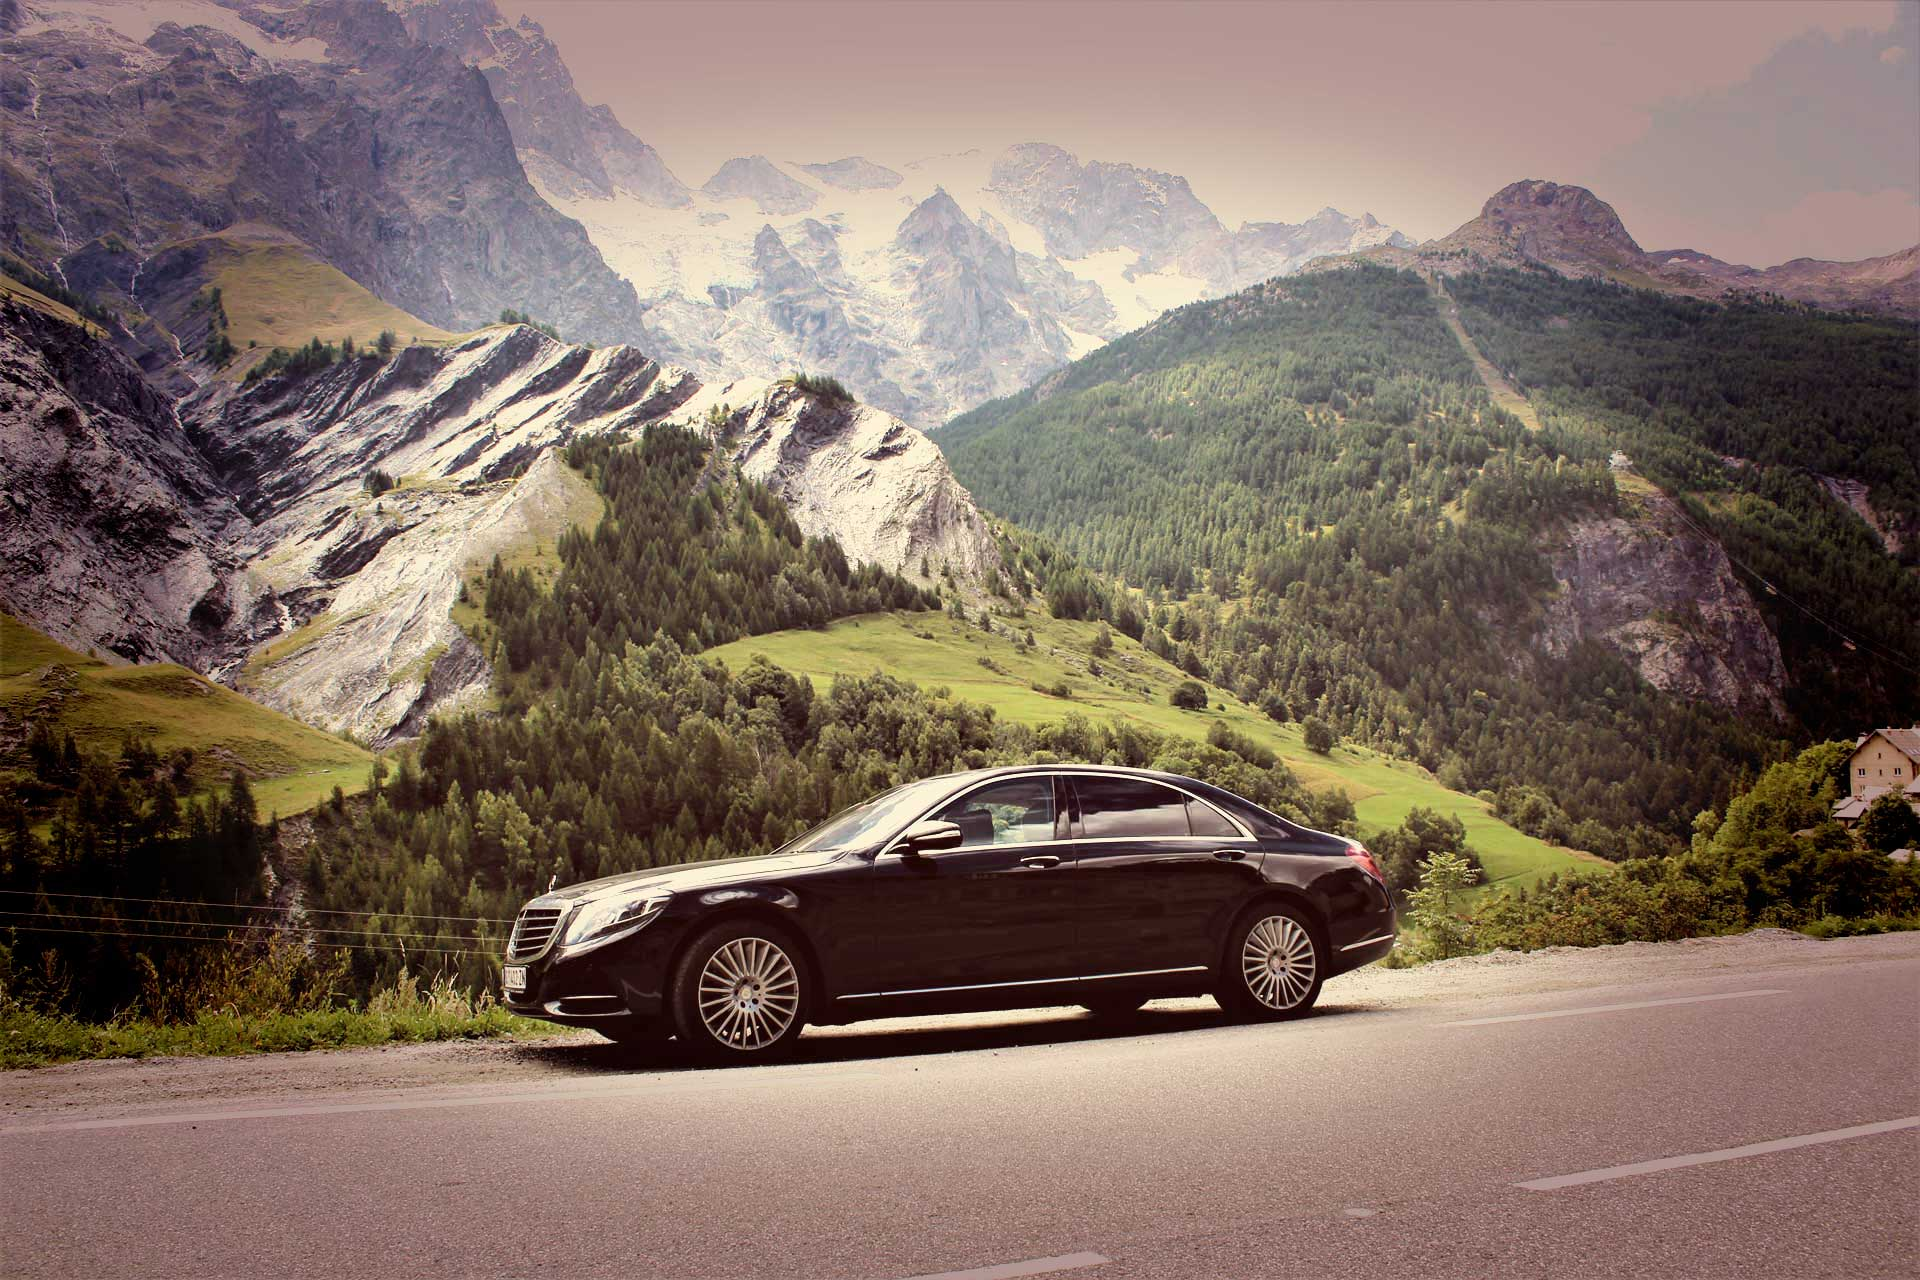 Black Mercedes S class parked besides the road with Alpes mountains behind on the horizon